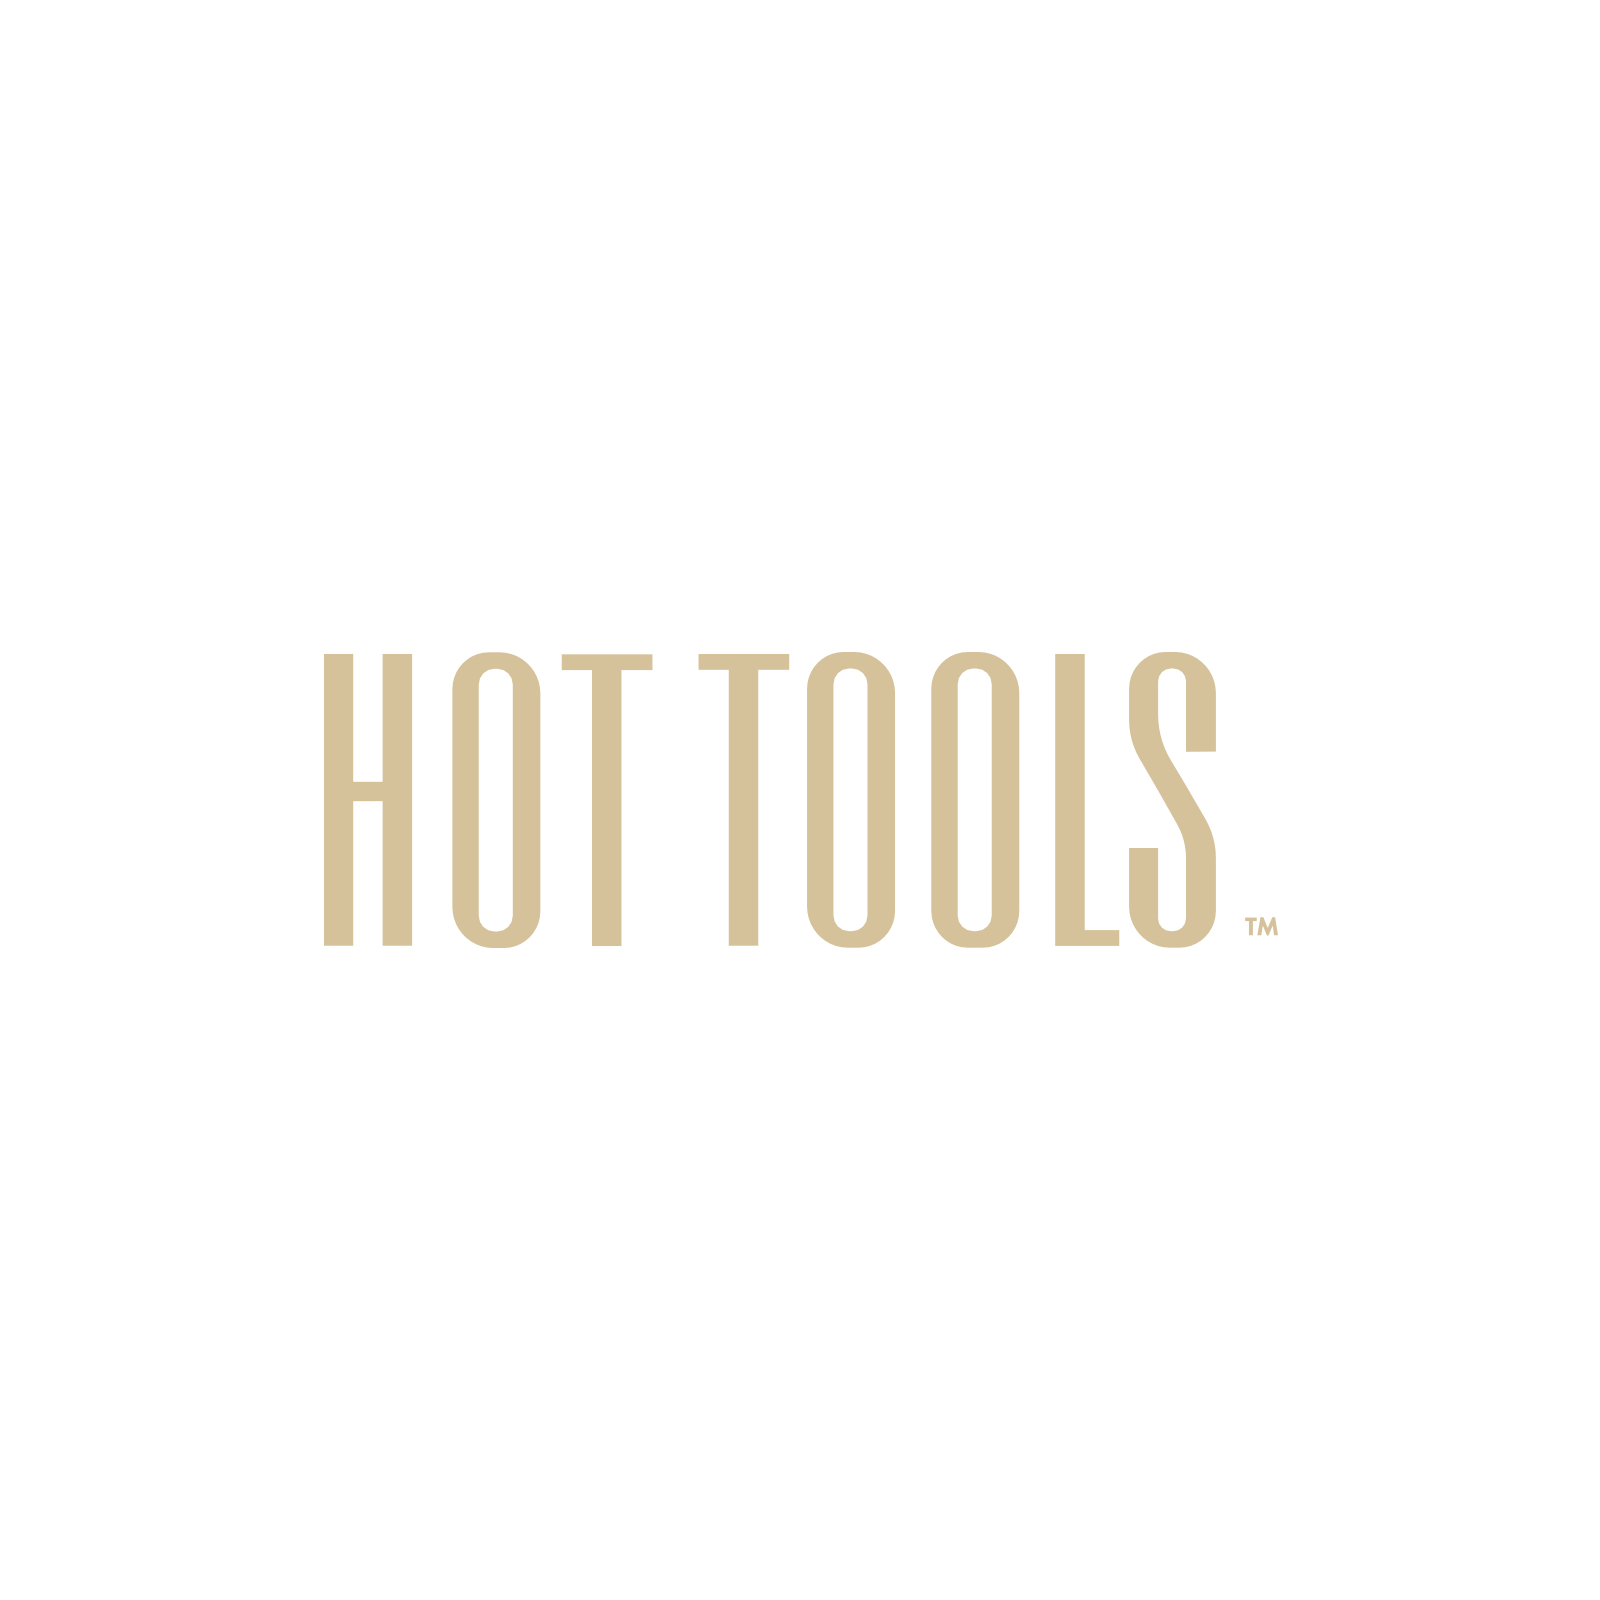 HOT TOOLS Signature Series Gold Flipperless Curling Iron, 1 ¼ Inch